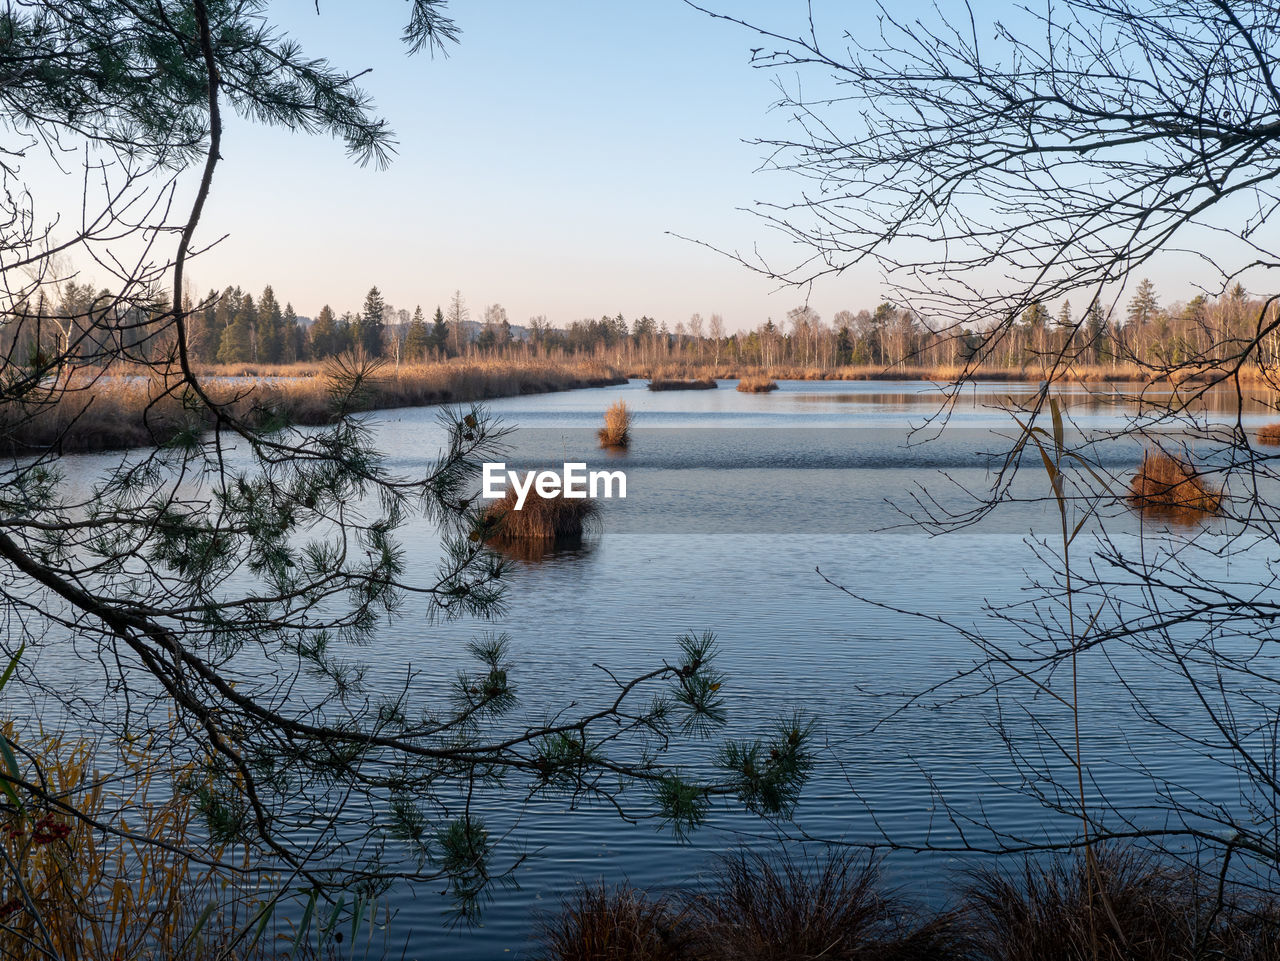 water, tree, sky, plant, lake, tranquility, bare tree, scenics - nature, tranquil scene, nature, beauty in nature, no people, non-urban scene, branch, clear sky, day, winter, outdoors